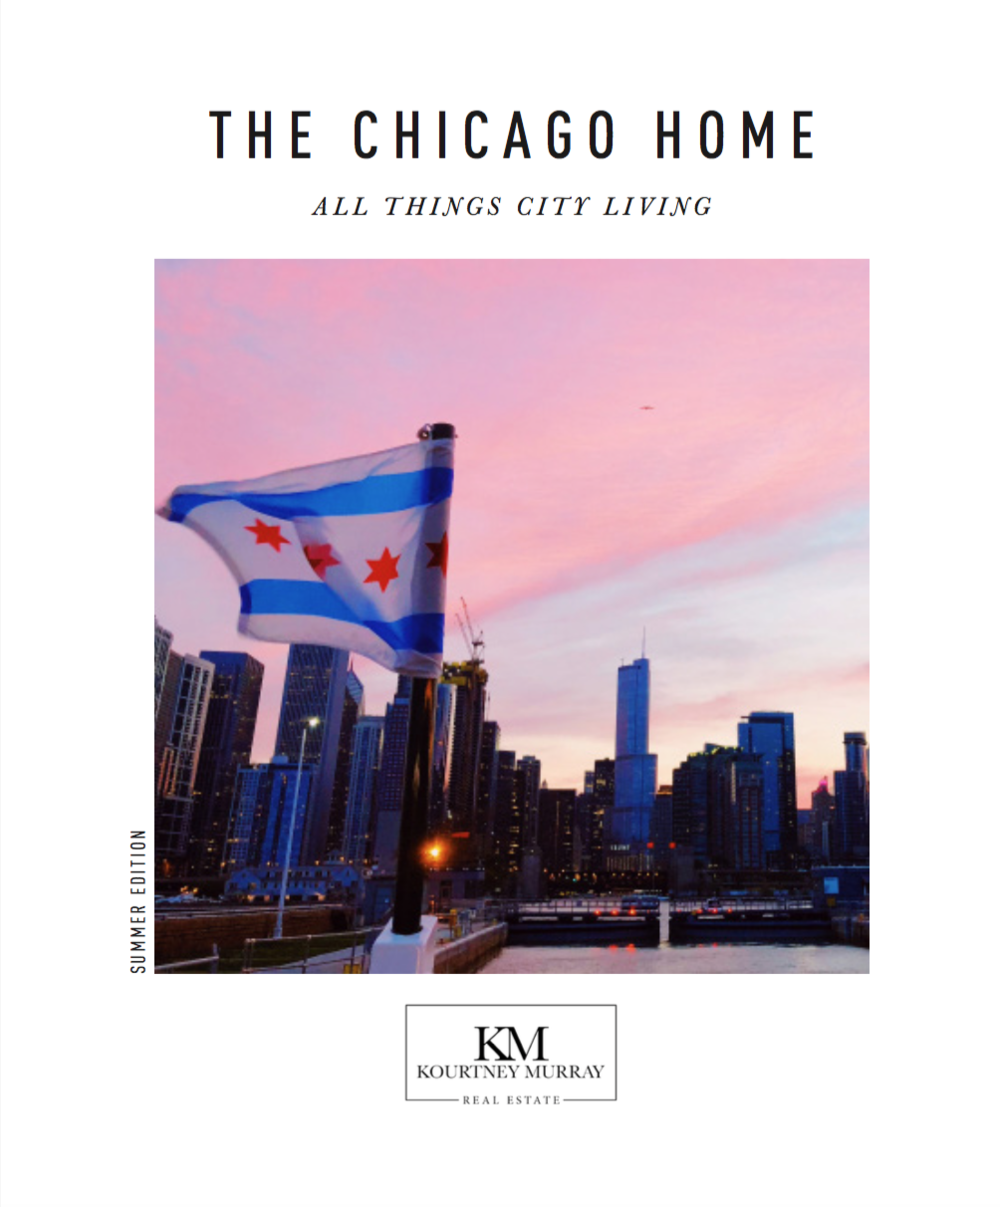 The-Chicago-Home-Summer-2018-Kourtney-Murray-Real-Estate.jpg